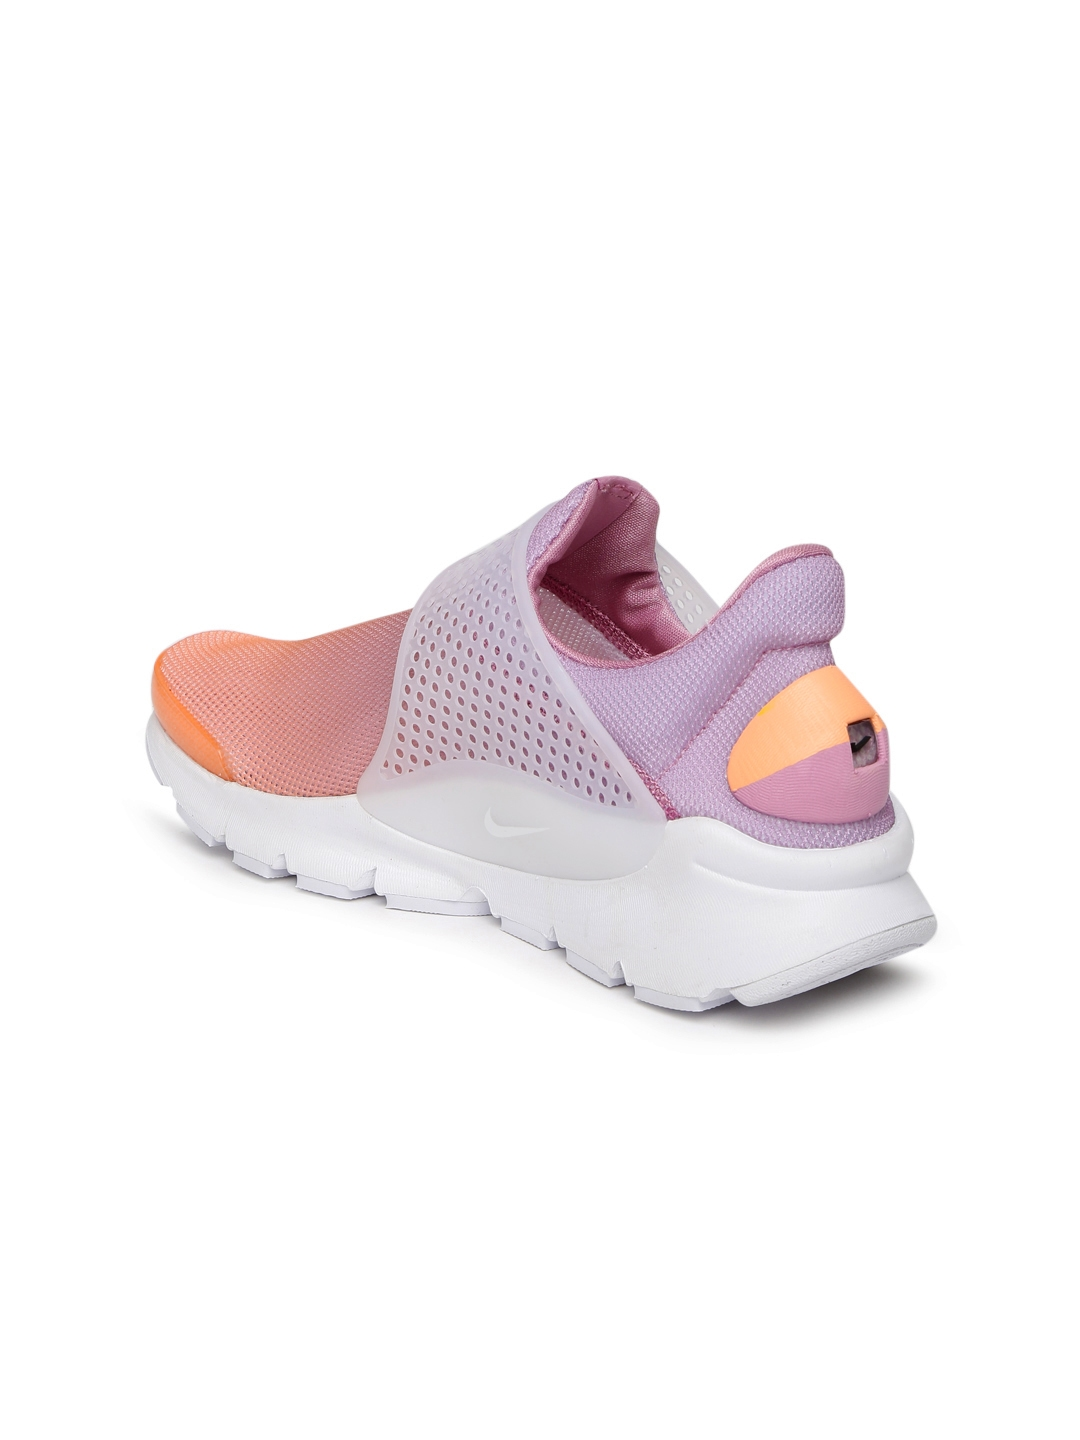 cheap for discount d4ed6 e2ab5 Nike Women Orange Sock DART BR Slip-On Sneakers